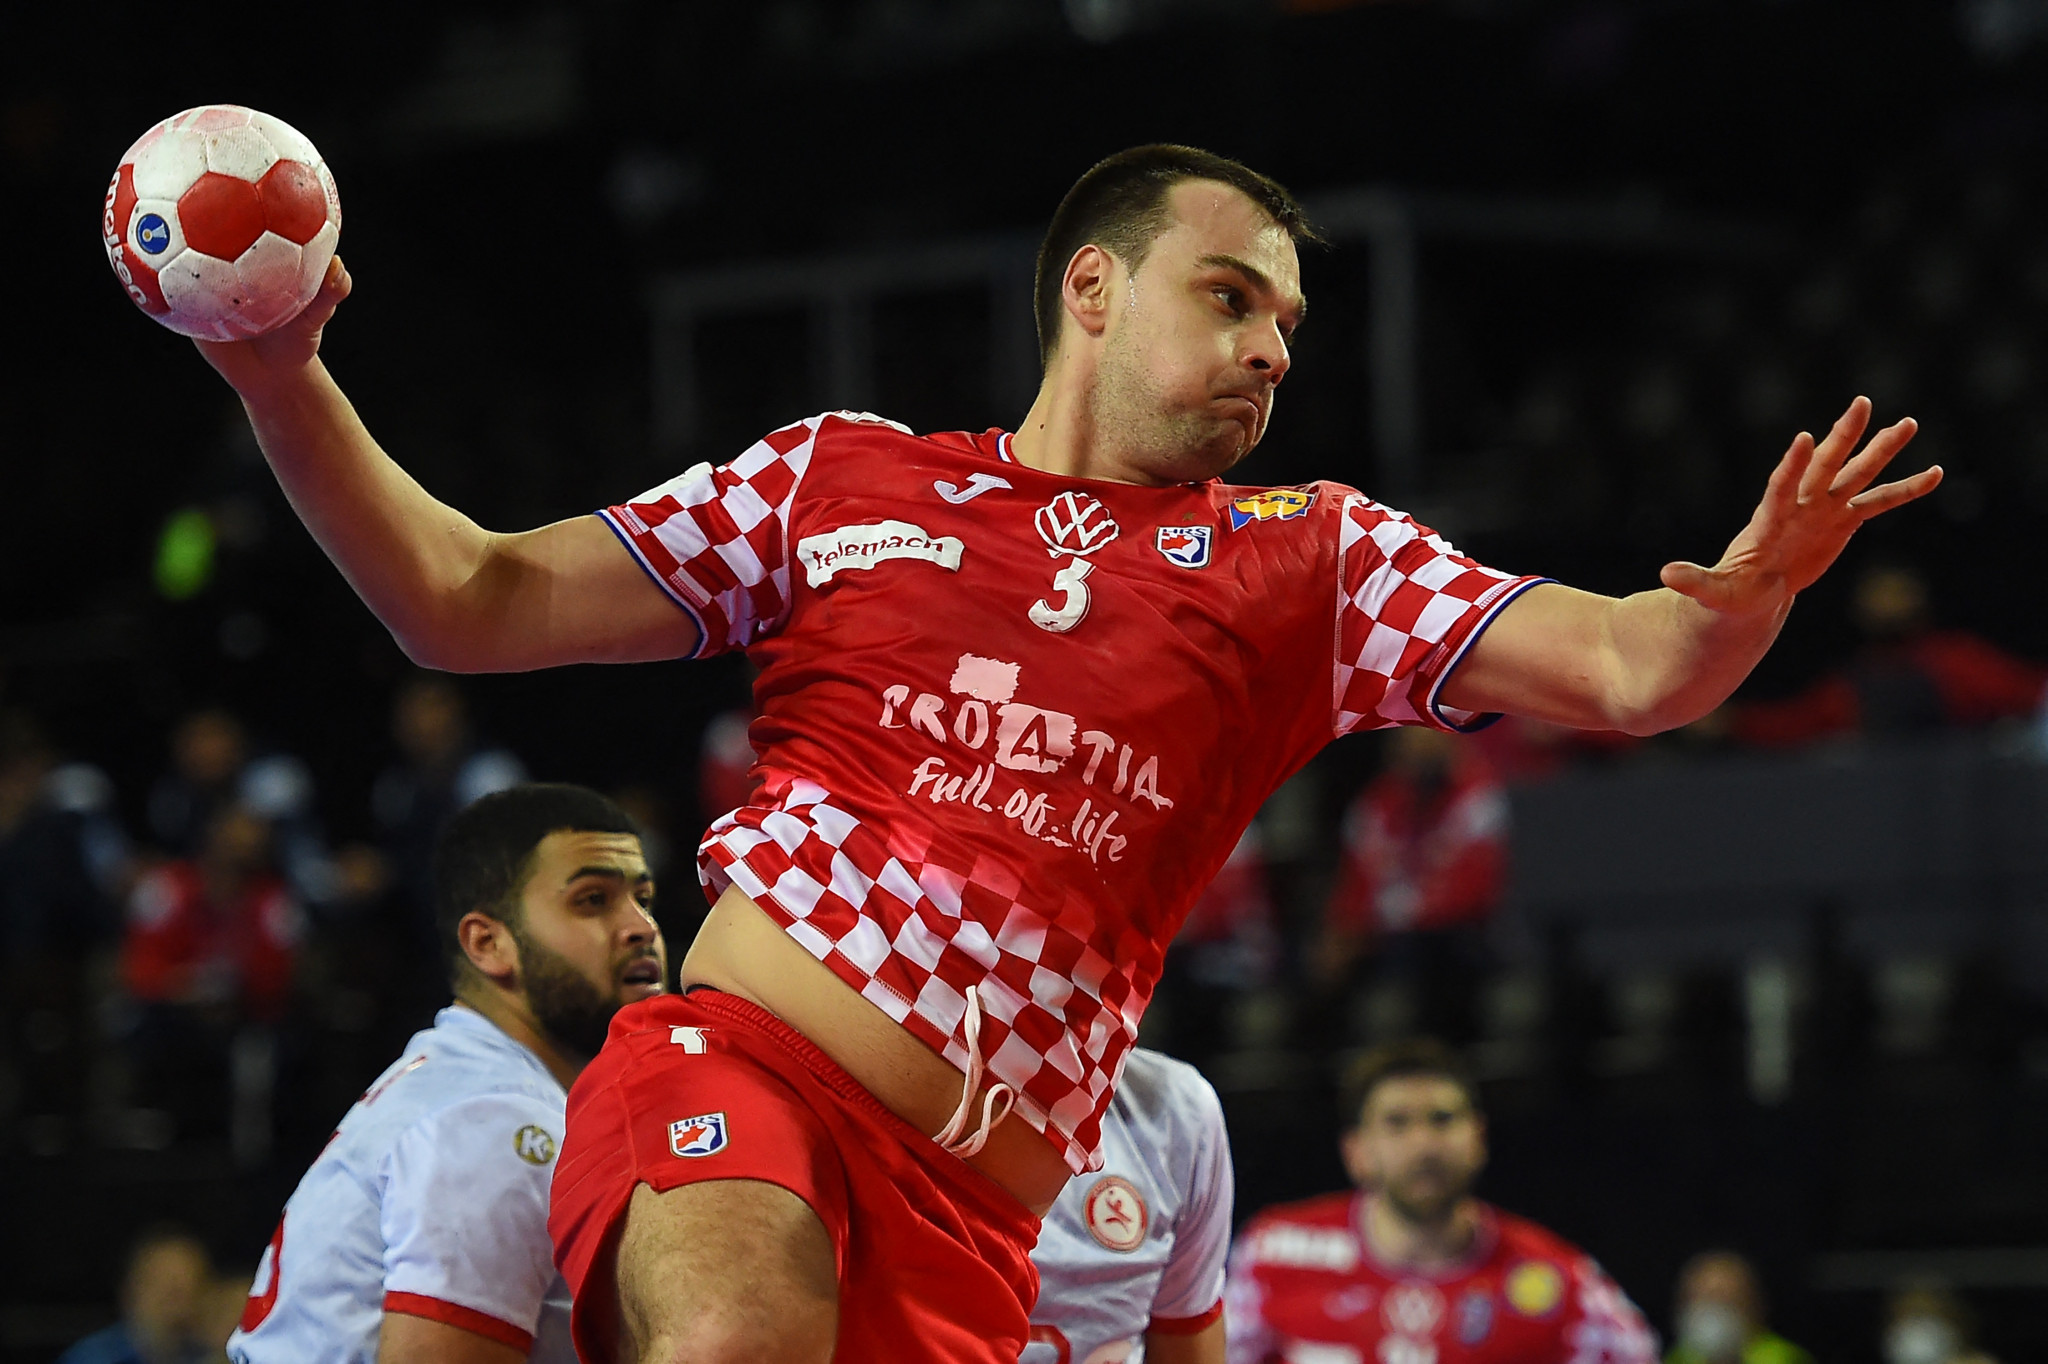 Despite beating Tunisia, Croatia's men's handball team missed out on a place at the Tokyo 2020 Olympics on goal difference ©Getty Images